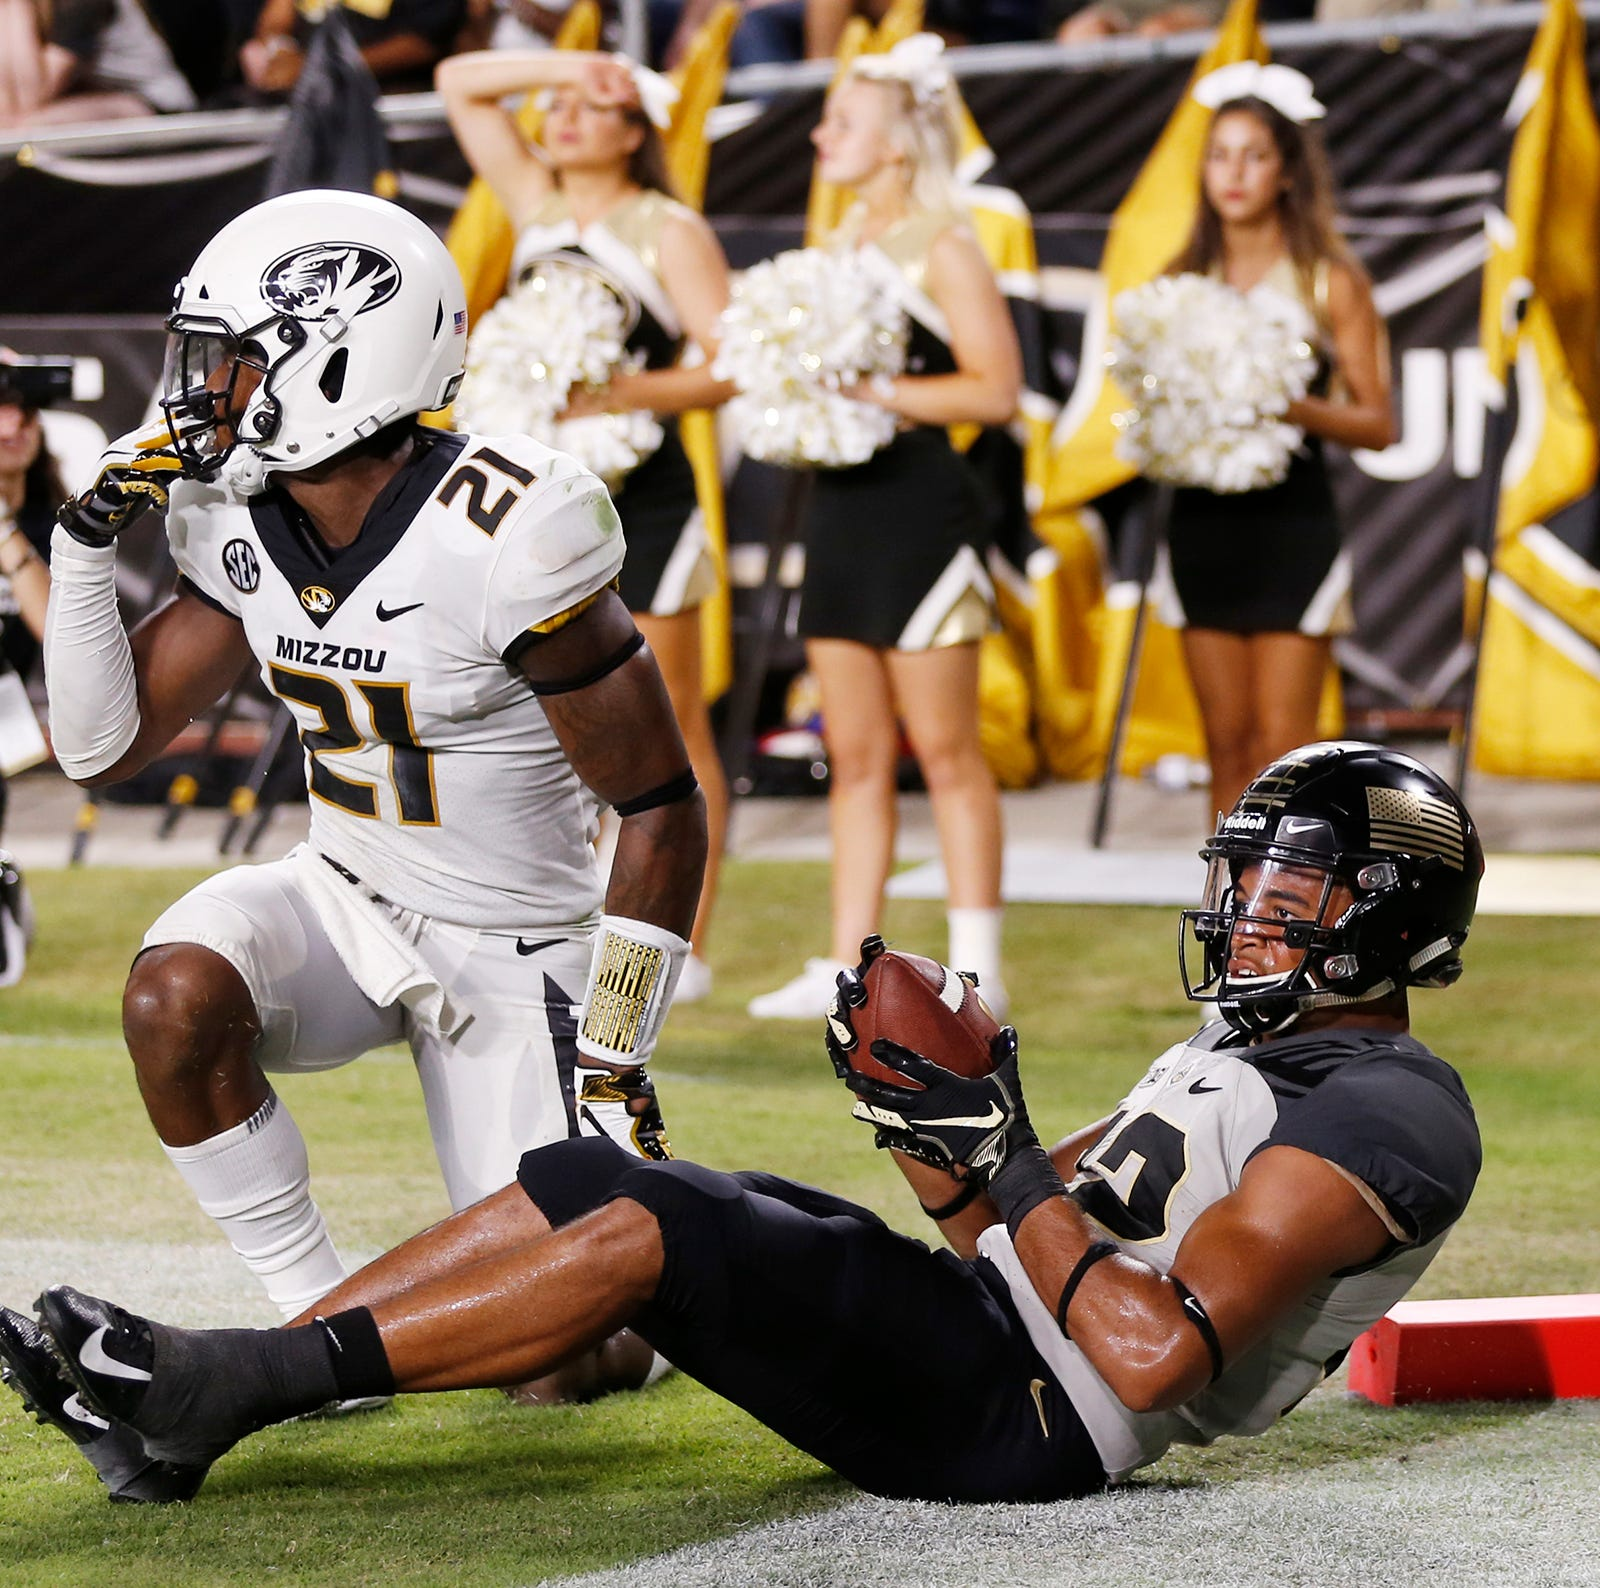 Jared Sparks of Purdue with catch that appeared to be good for a touchdown late in the fourth quarter against Missouri Saturday, September 15, 2018, in West Lafayette. Upon review, officials said Sparks did not have control of the ball, and the touchdown was negated. Purdue lost 40-37 on a Missouri field goal as time expired.